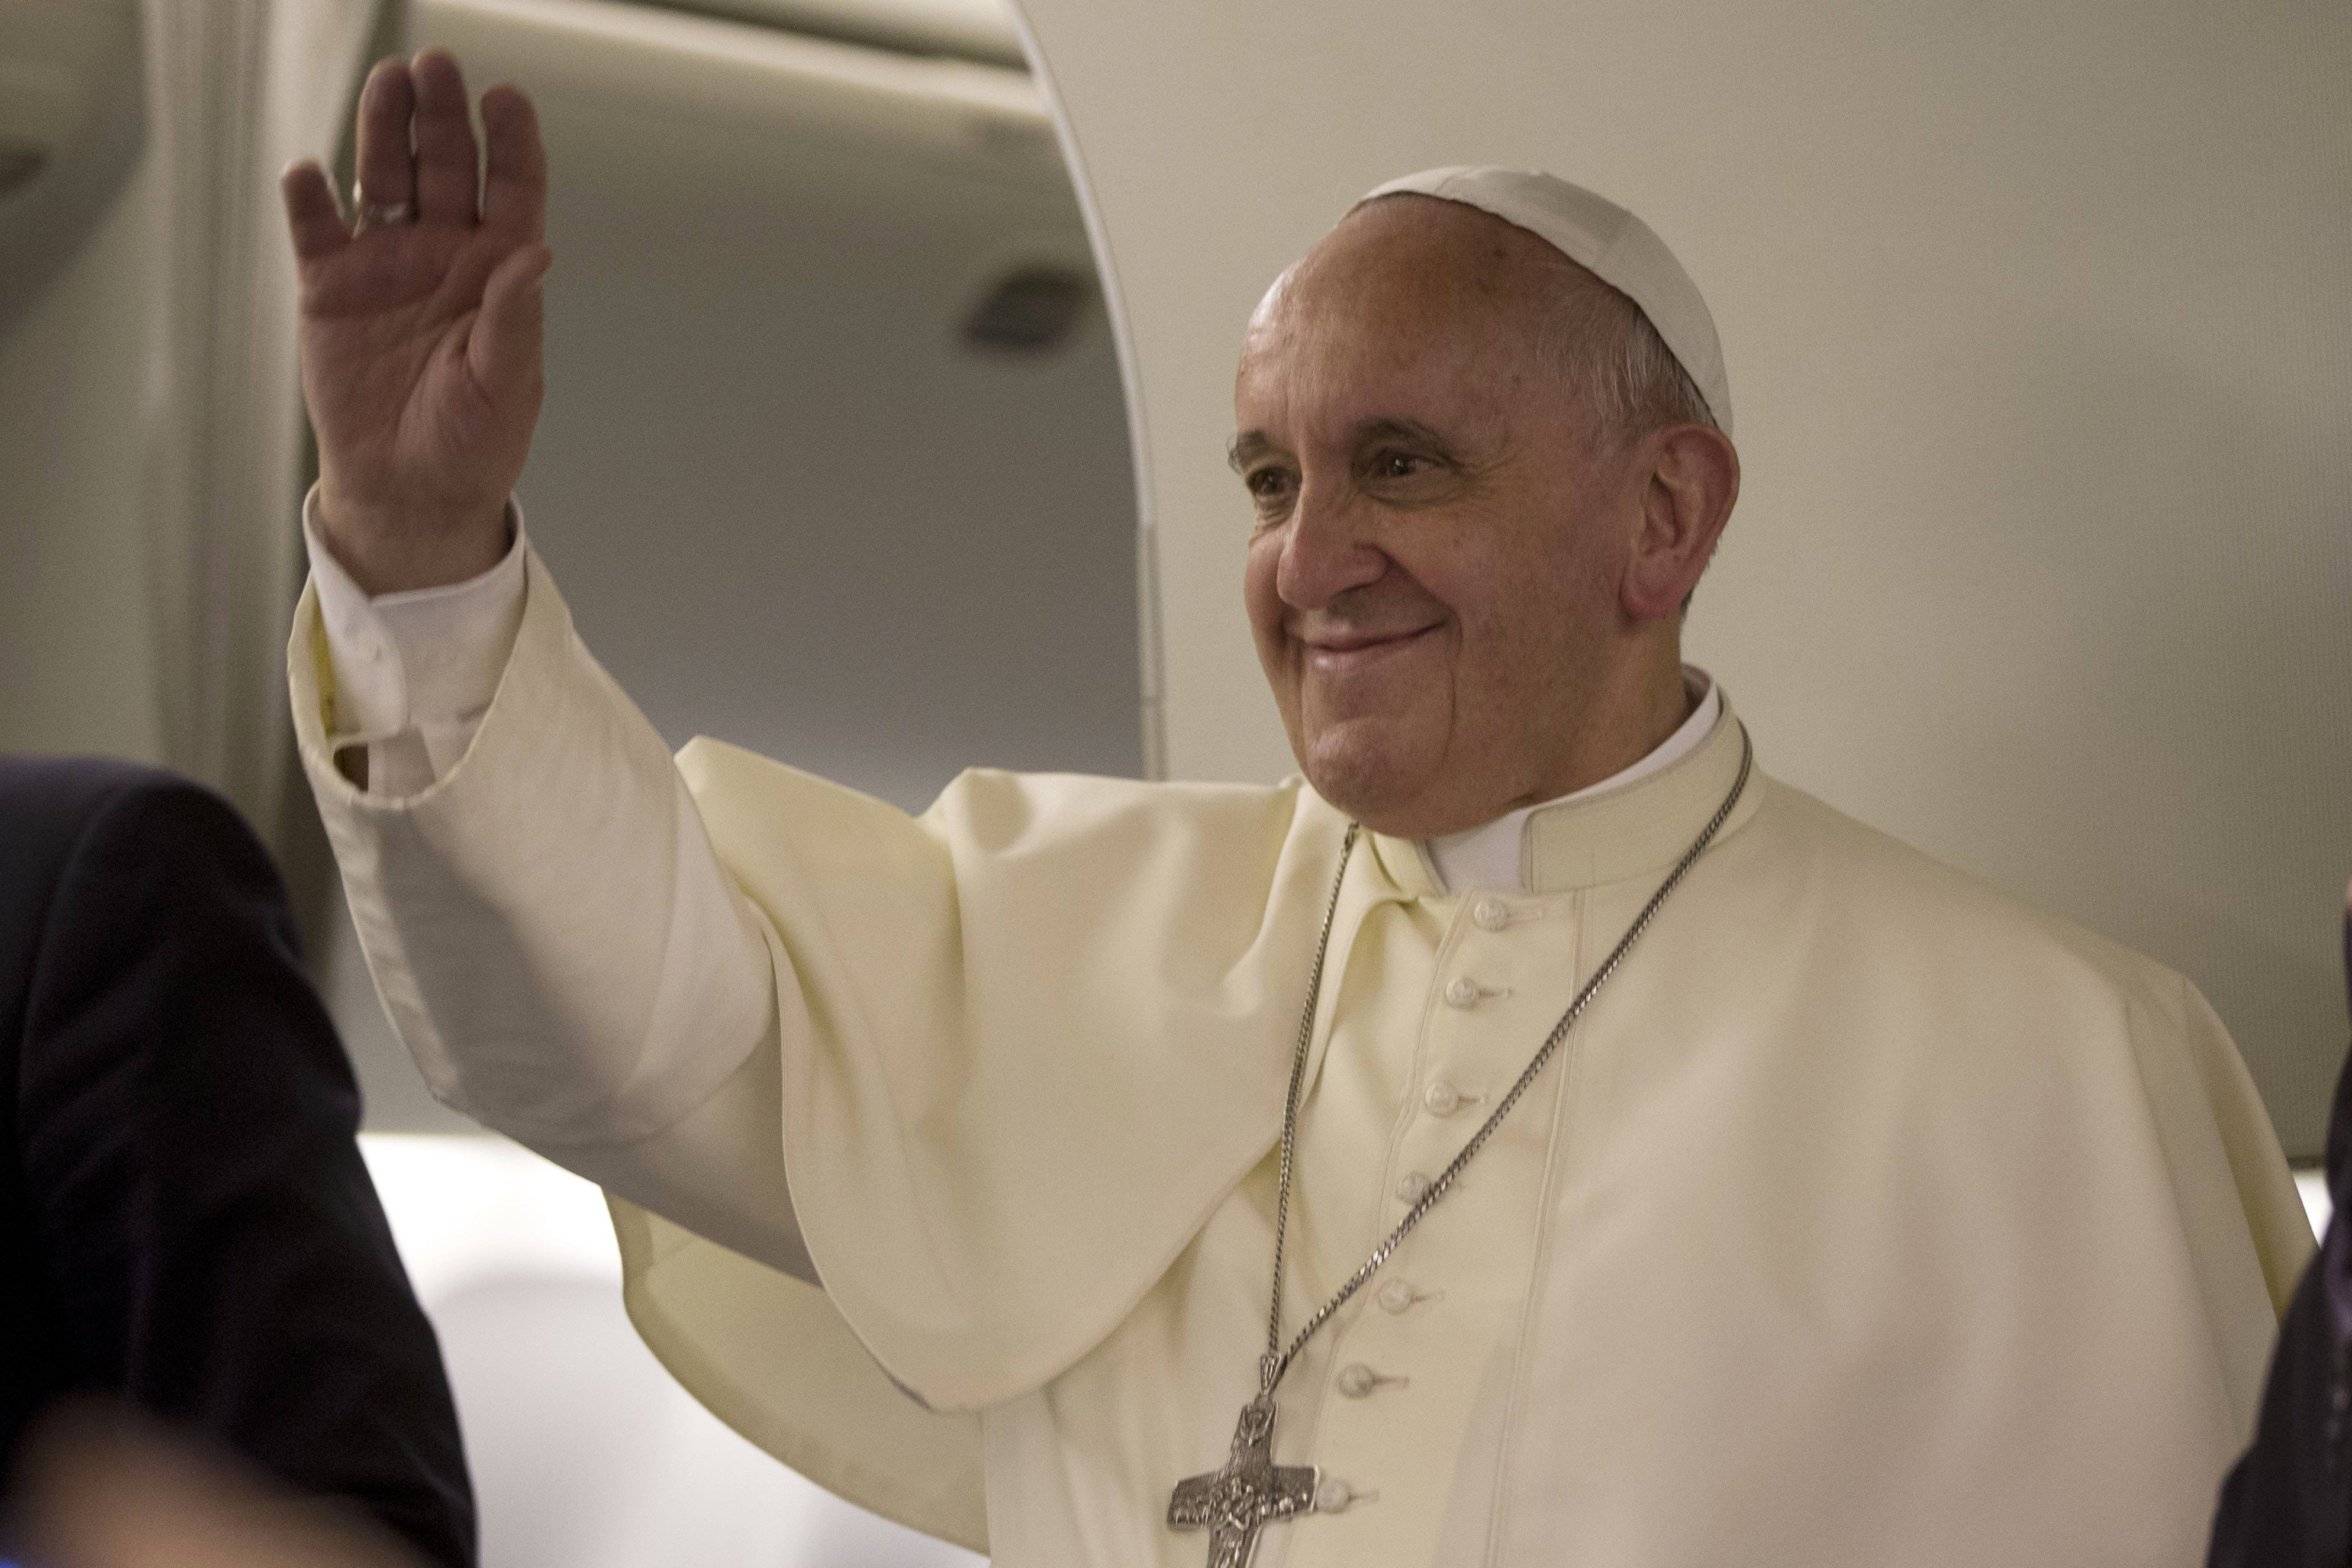 Abuse victims skeptical about meeting with pope